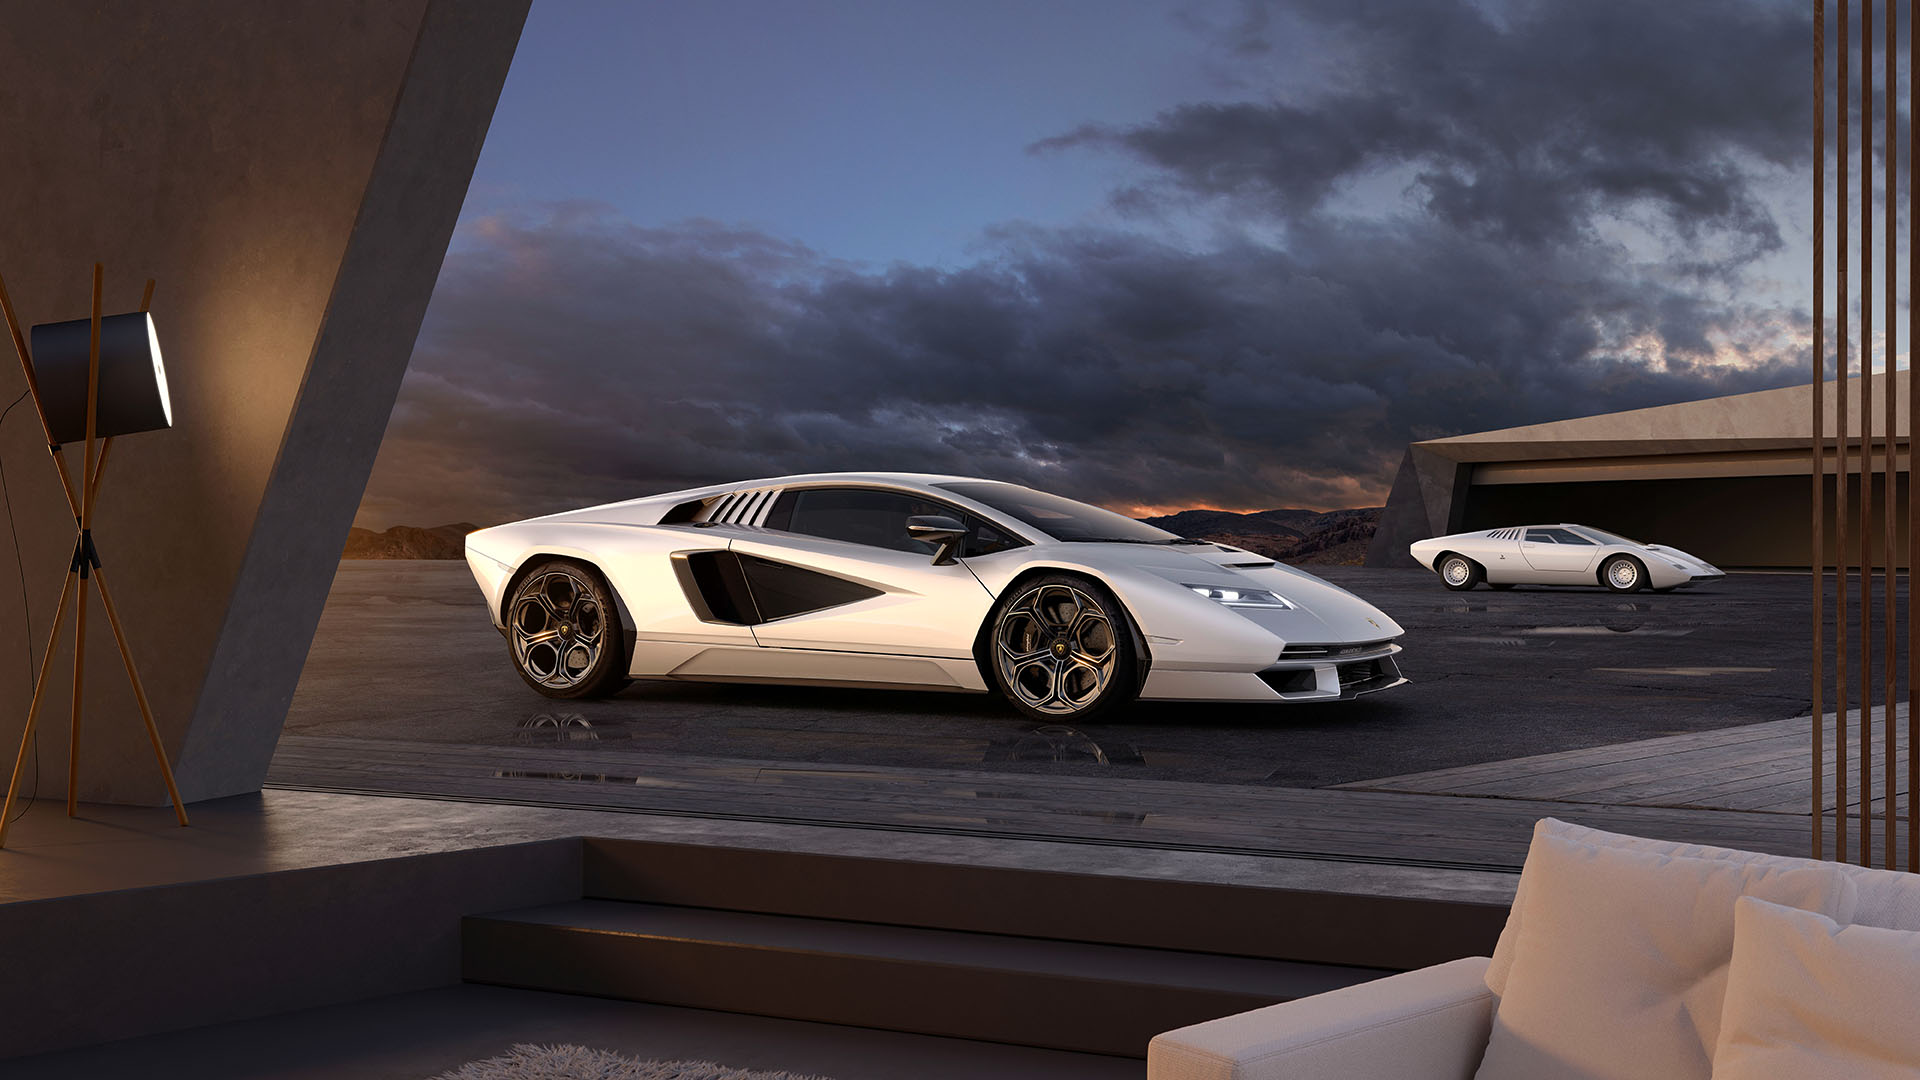 Official photo of the old and new Countach